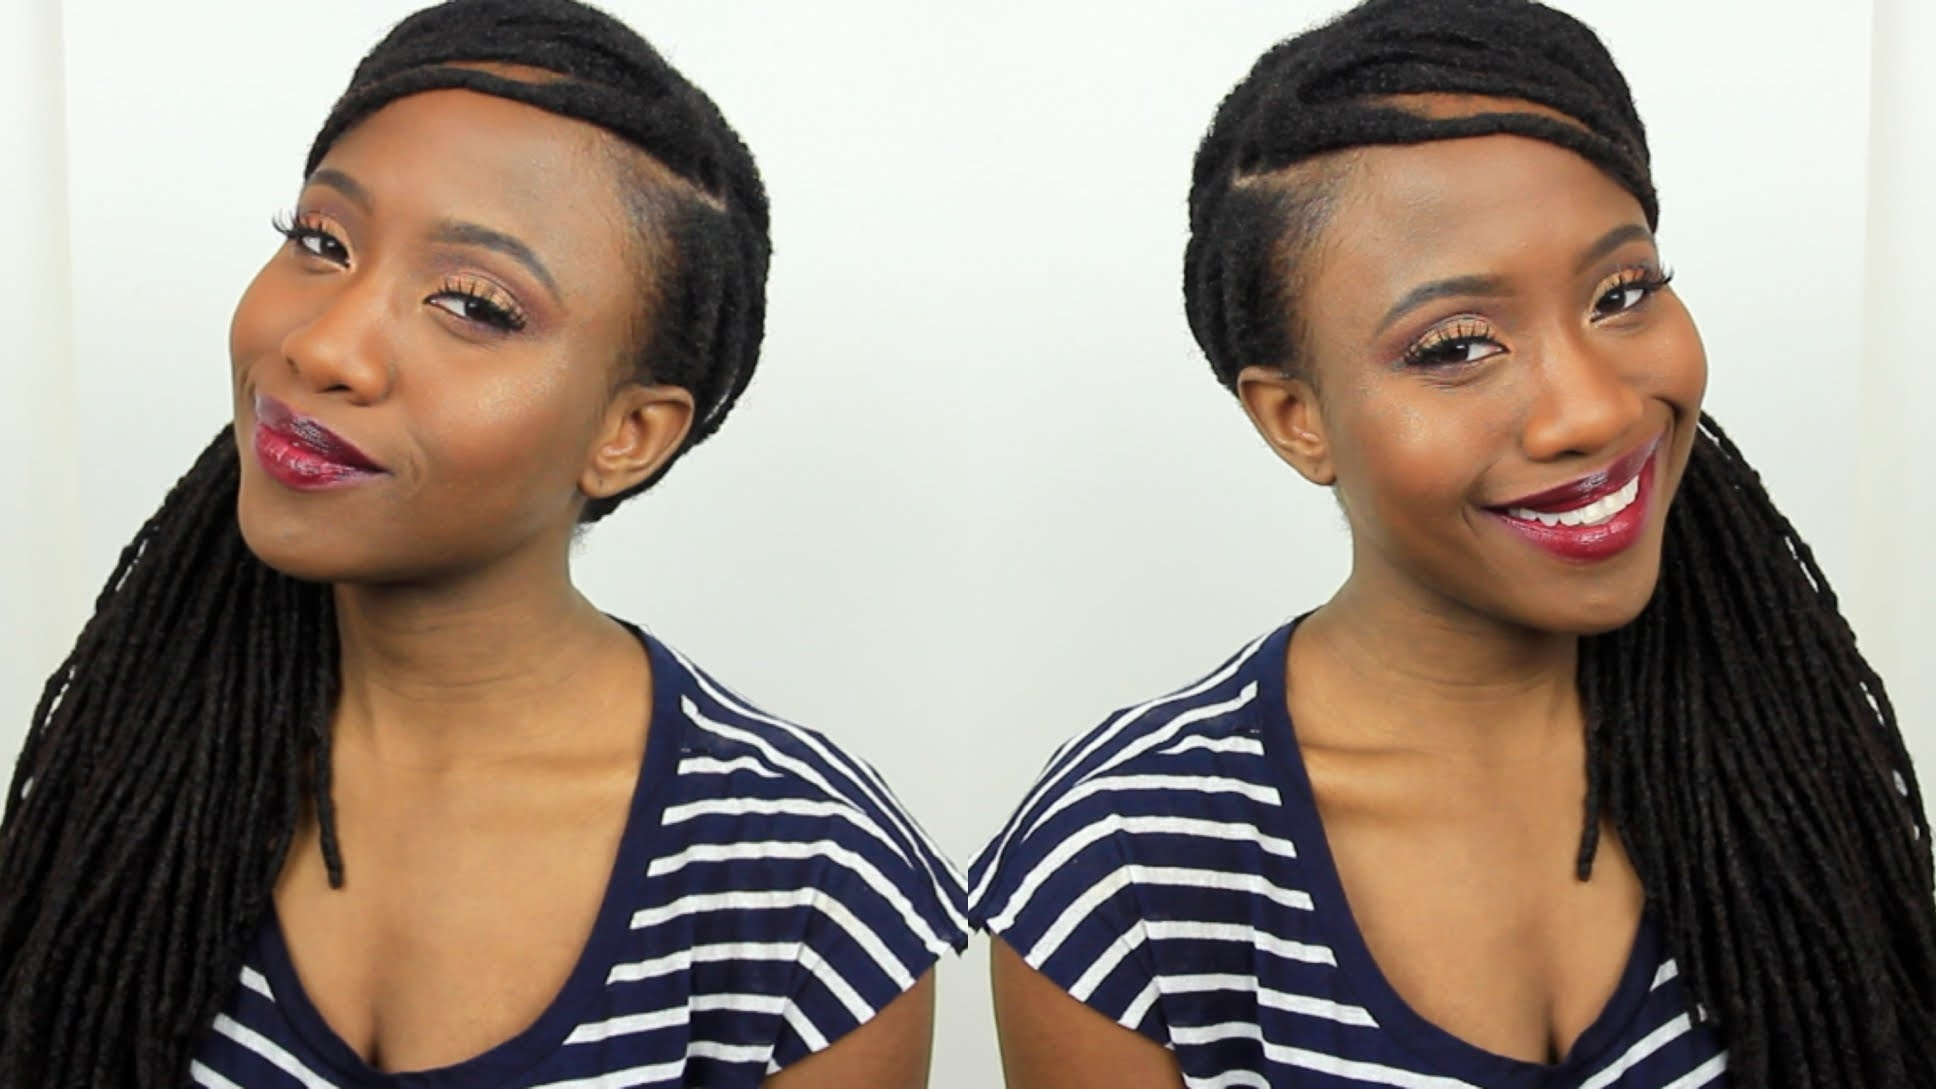 Most Up To Date Cornrows Hairstyles For Receding Hairline Throughout How To Cover Up & Fill In Thinning Edges & Hairline + Loc Style (View 11 of 15)